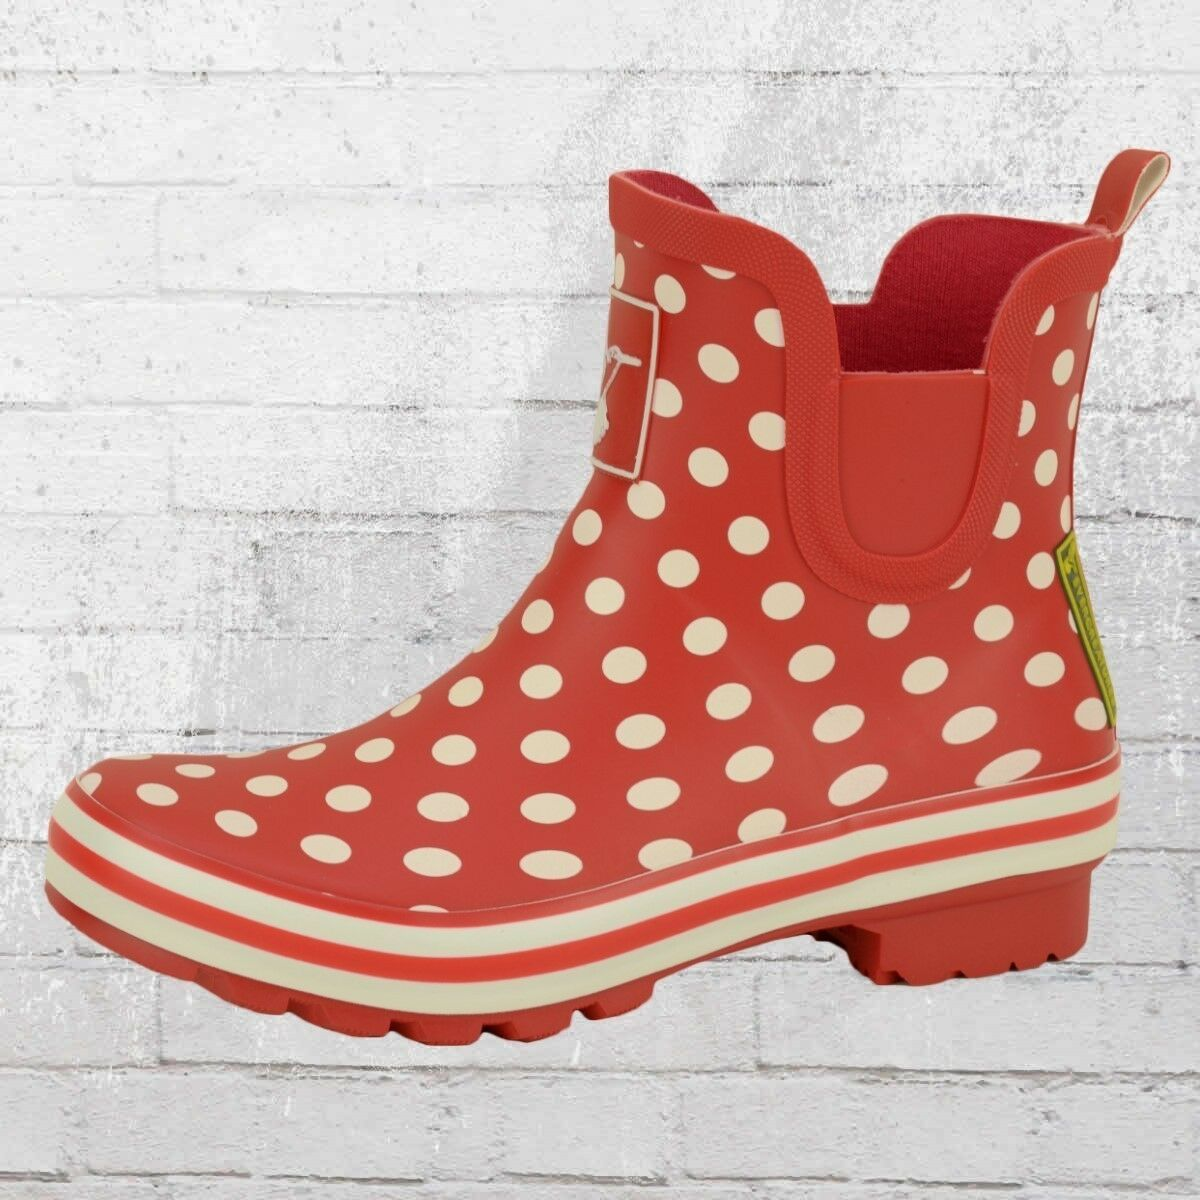 Evercreatures Breve Stivali di gomma Polka Dots Meadow rosso bianco puntini Wellies